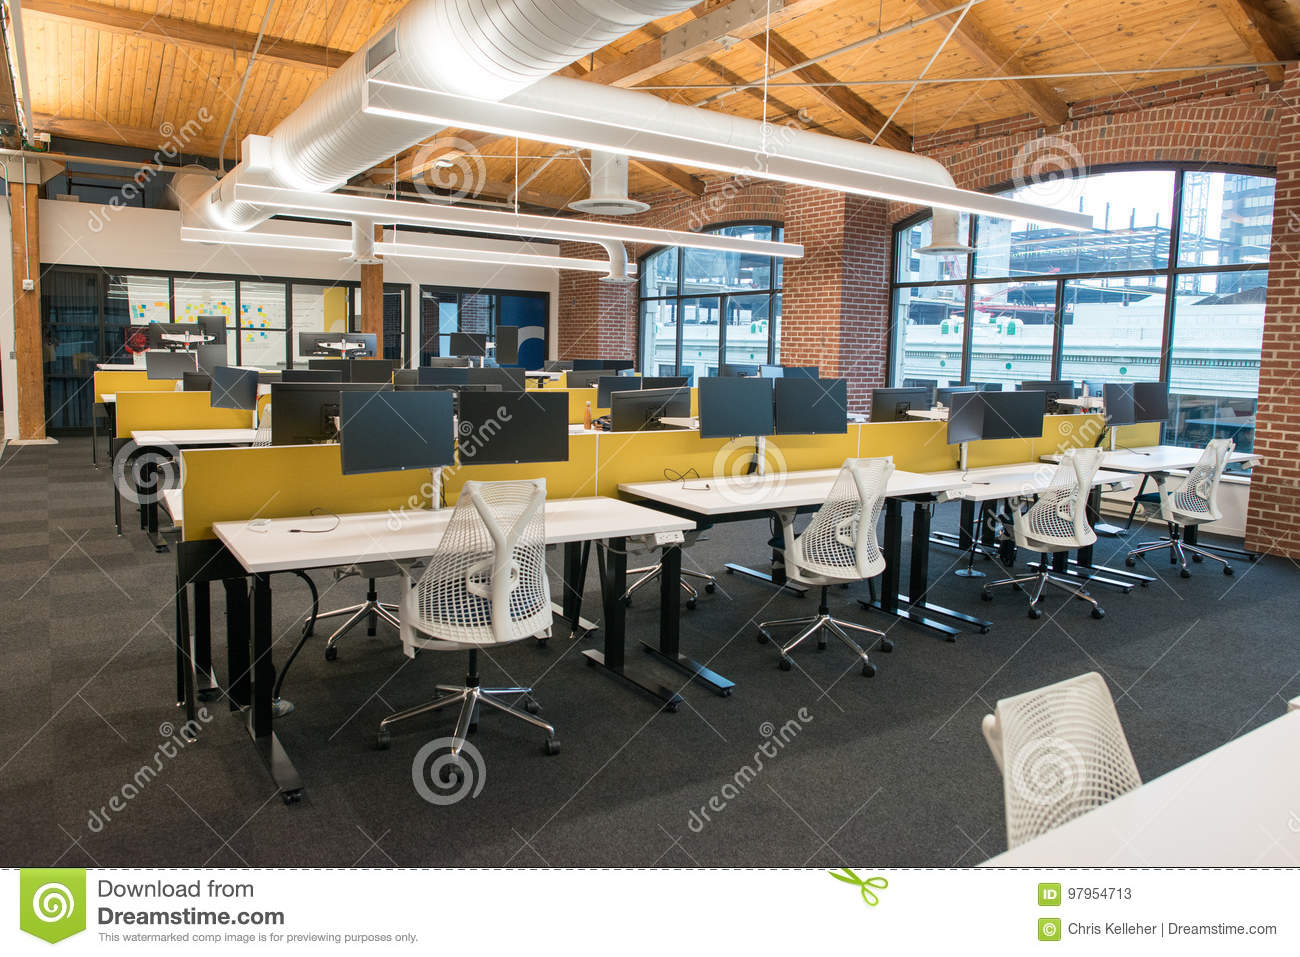 Trendy office Fashionable Trendy Modern Open Concept Loft Office Space With Big Windows Natural Light And Layout Ddproperty Trendy Modern Open Concept Loft Office Space With Big Windows